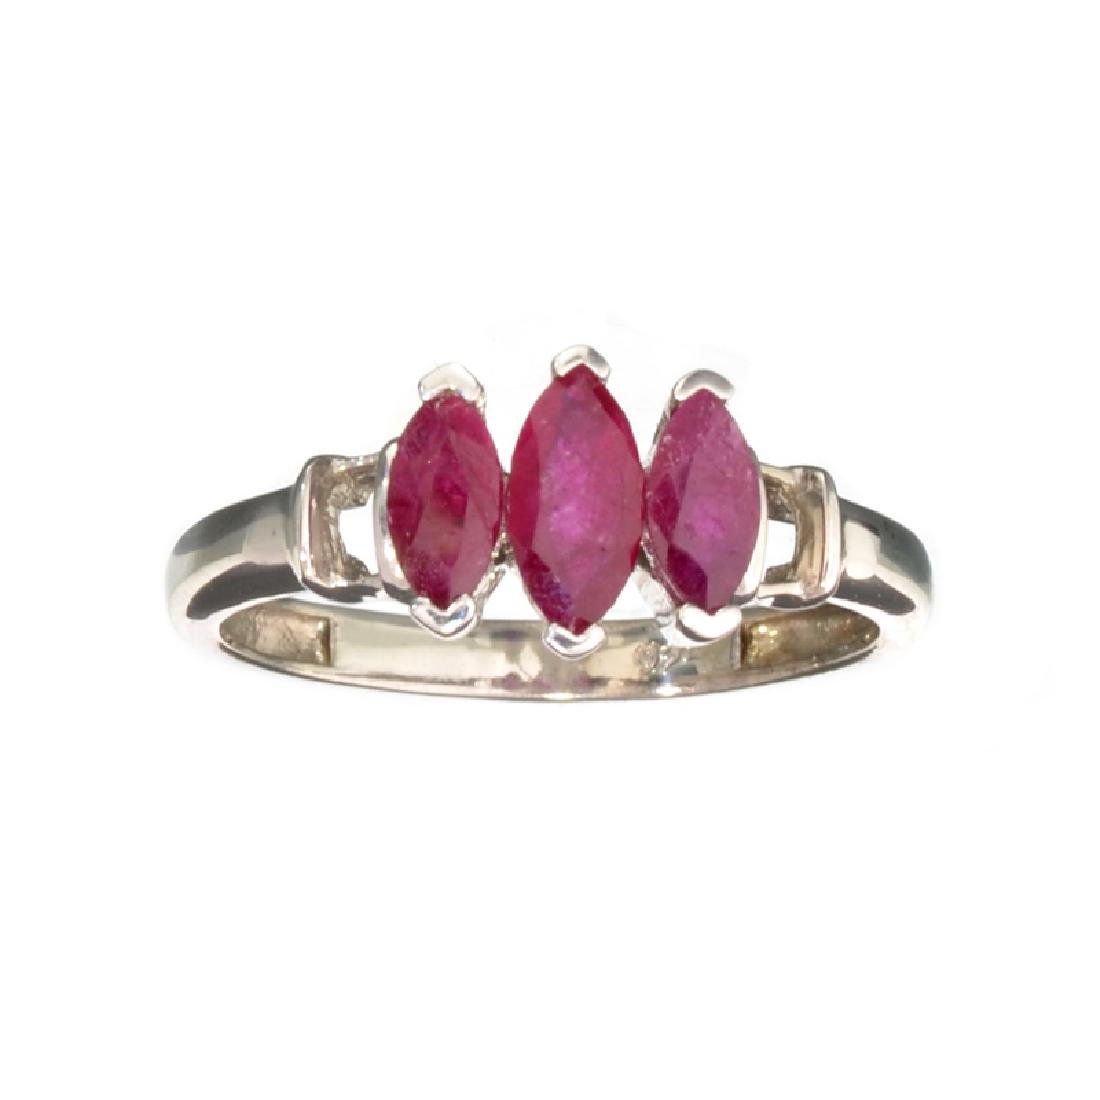 APP: 0.8k Fine Jewelry 1.00CT Marquise Cut Ruby And